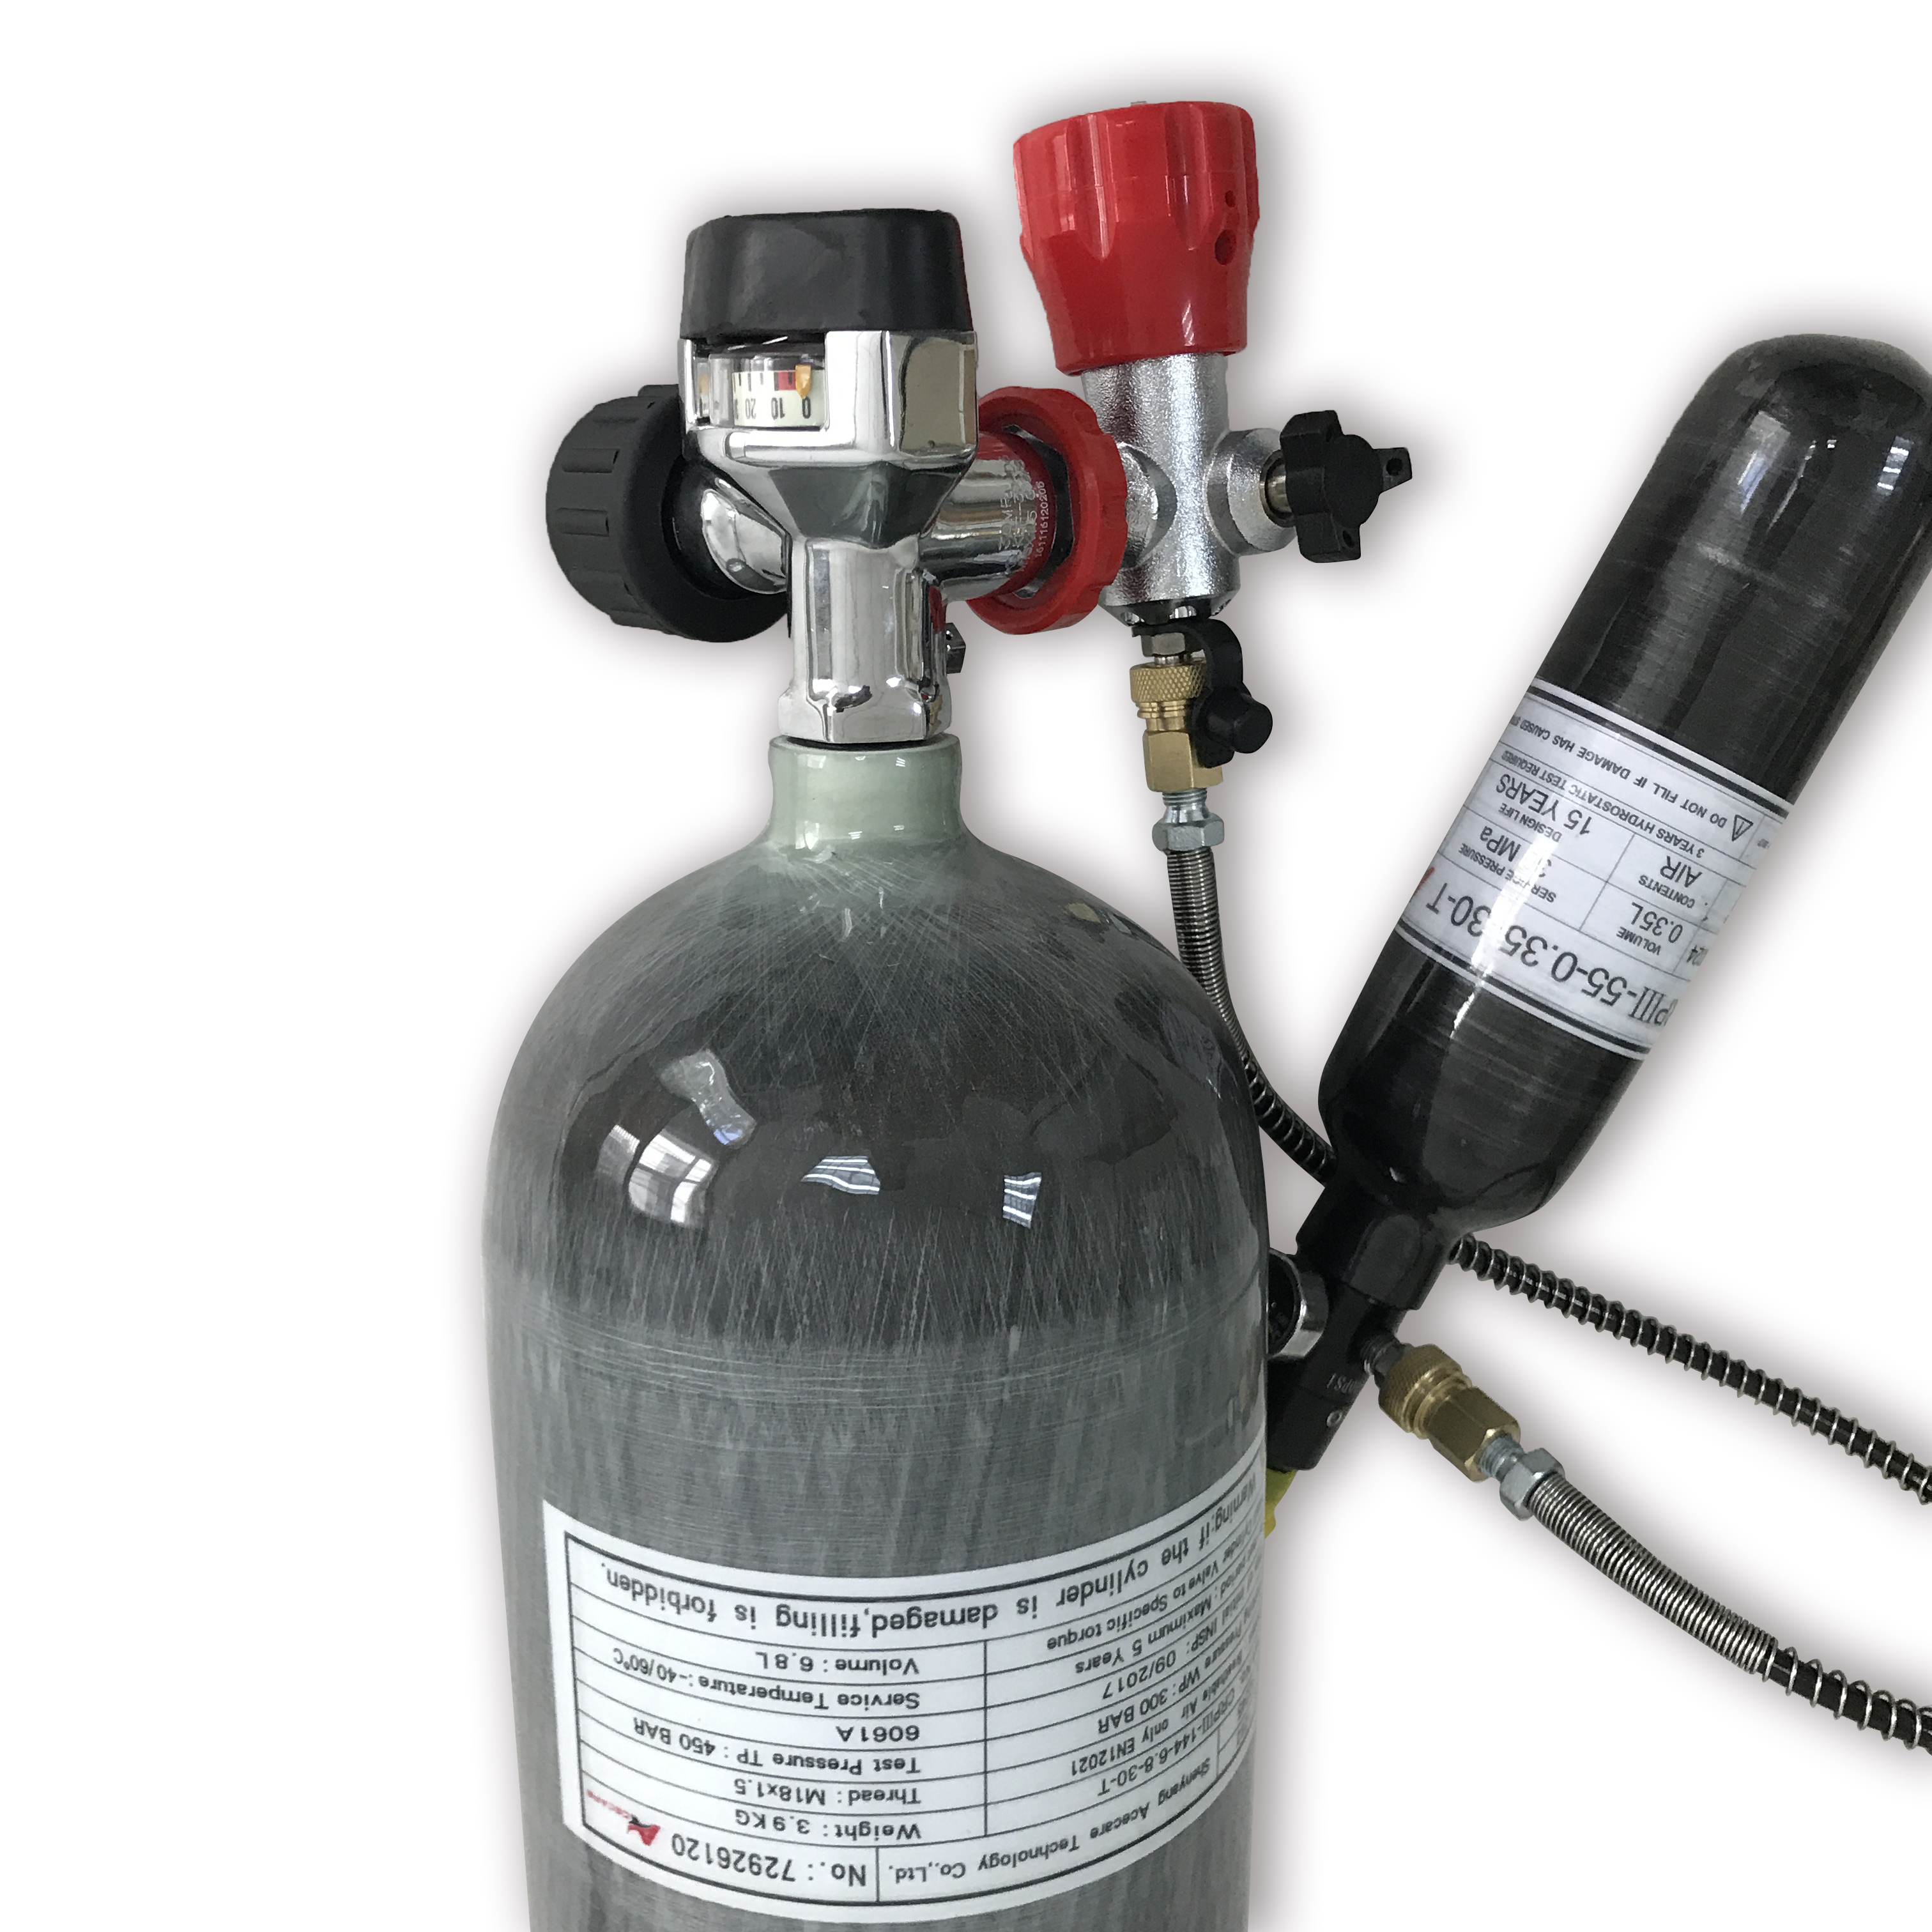 AC16820161035 Compressed Air Guns To Hunt 6.8L Carbon 4500 Psi Oxygen Cylinders Diving 300bar Silenciador Airforce Condor Pcp